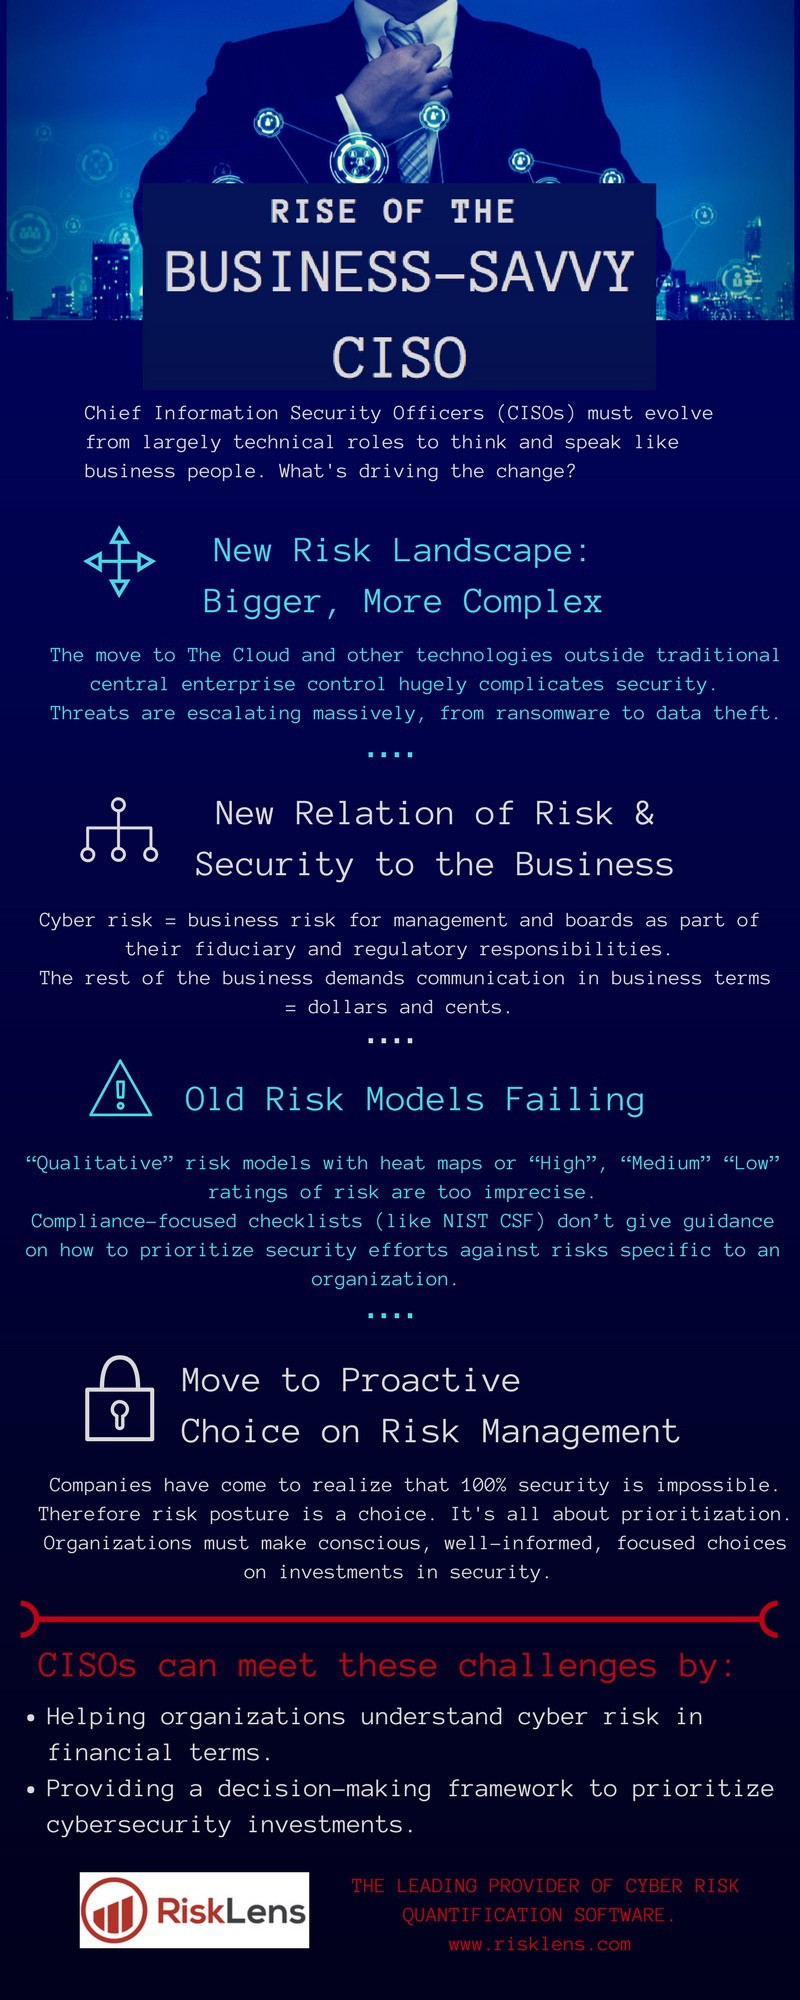 rise-of-the-business-savvy-ciso-2 copy.jpg